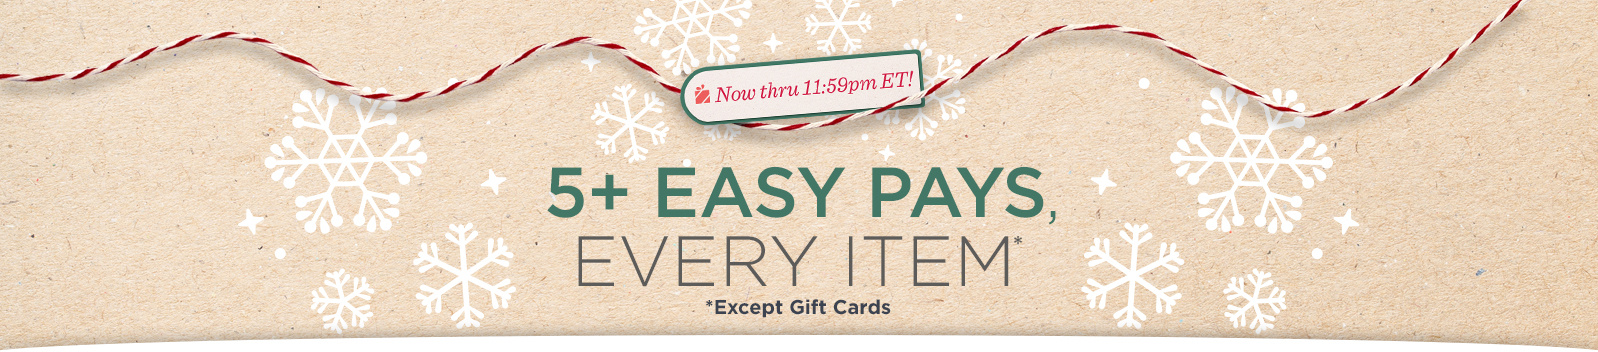 Now thru 11:59pm ET! 5+ Easy Pays, Every Item* *Except Gift Cards